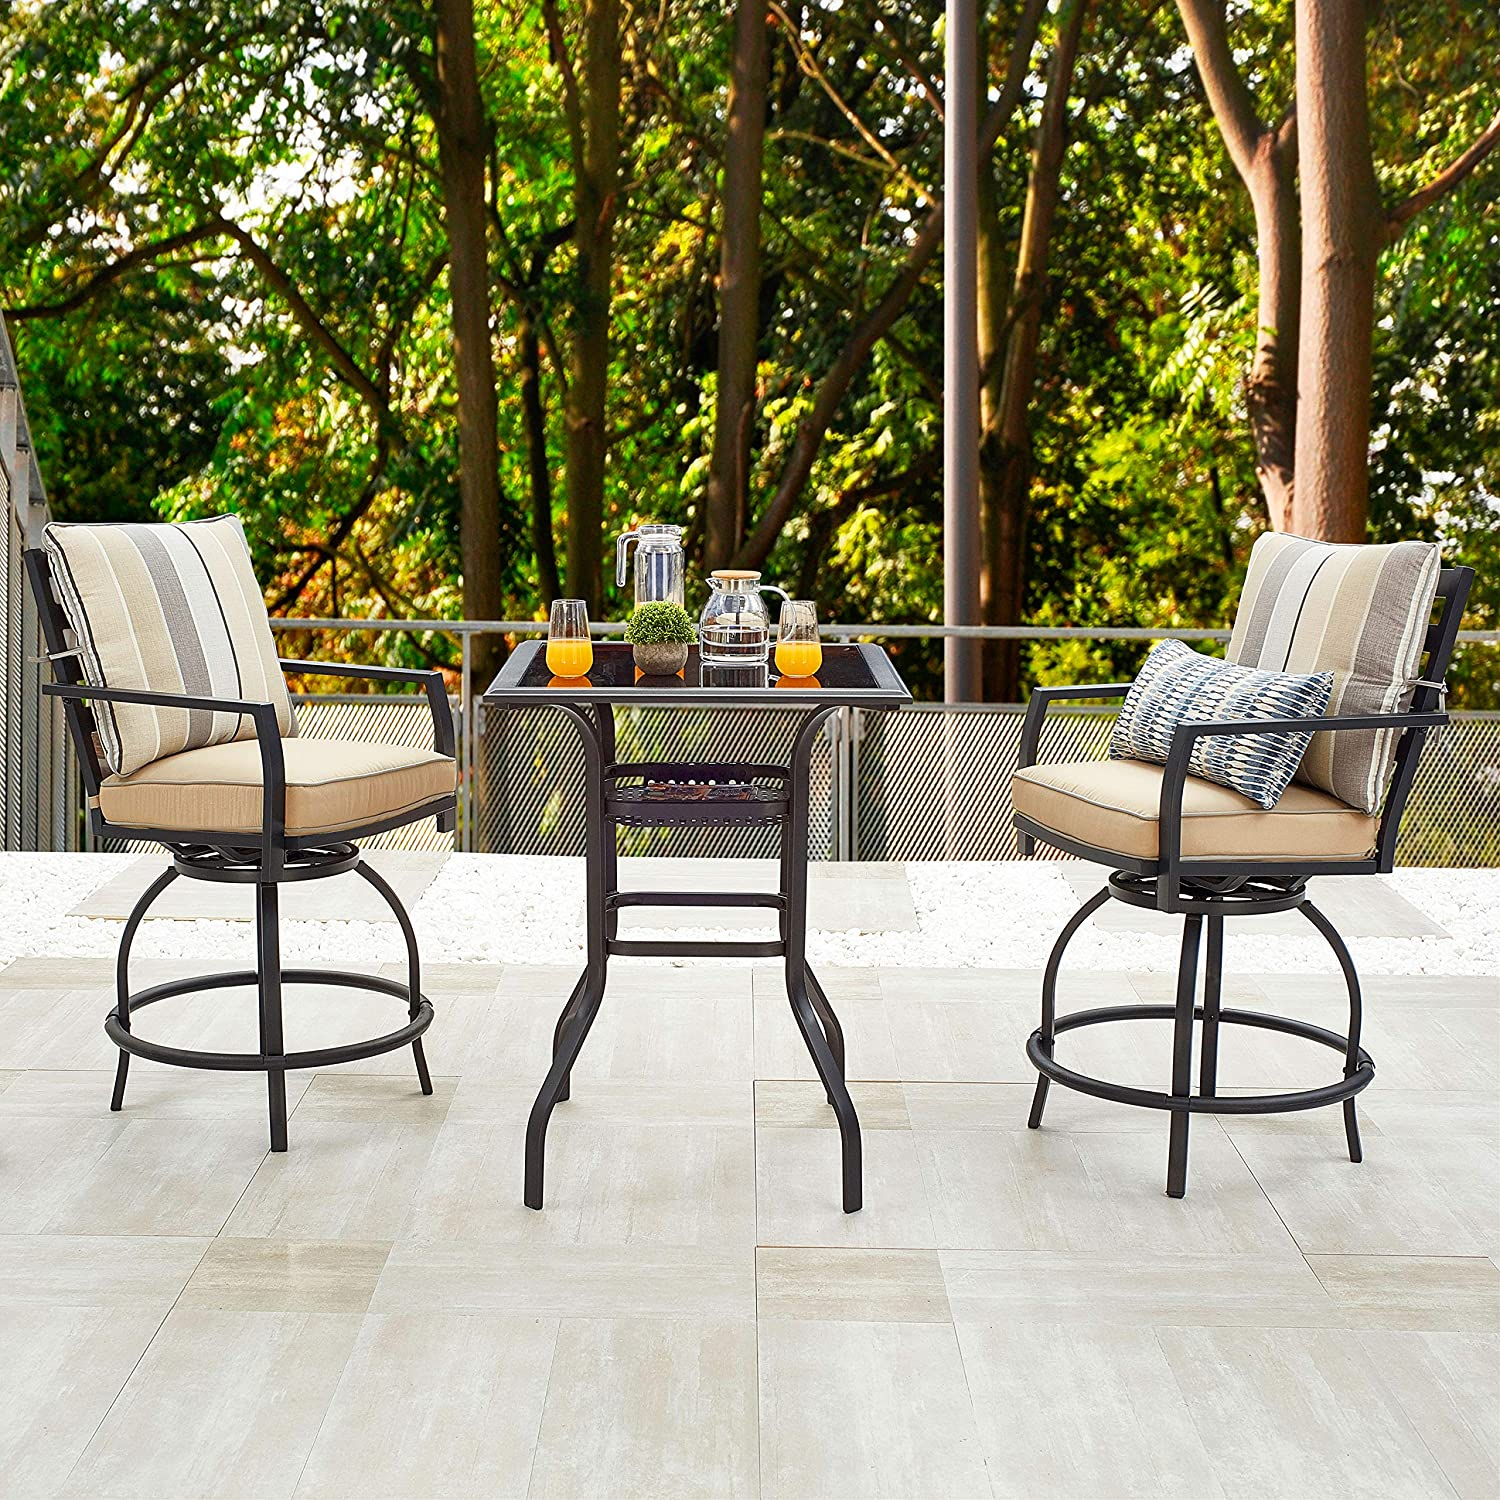 lokatse home patio bar height set with 2 outdoor swivel chairs and 1 high glass top table 3 piece bistro beige